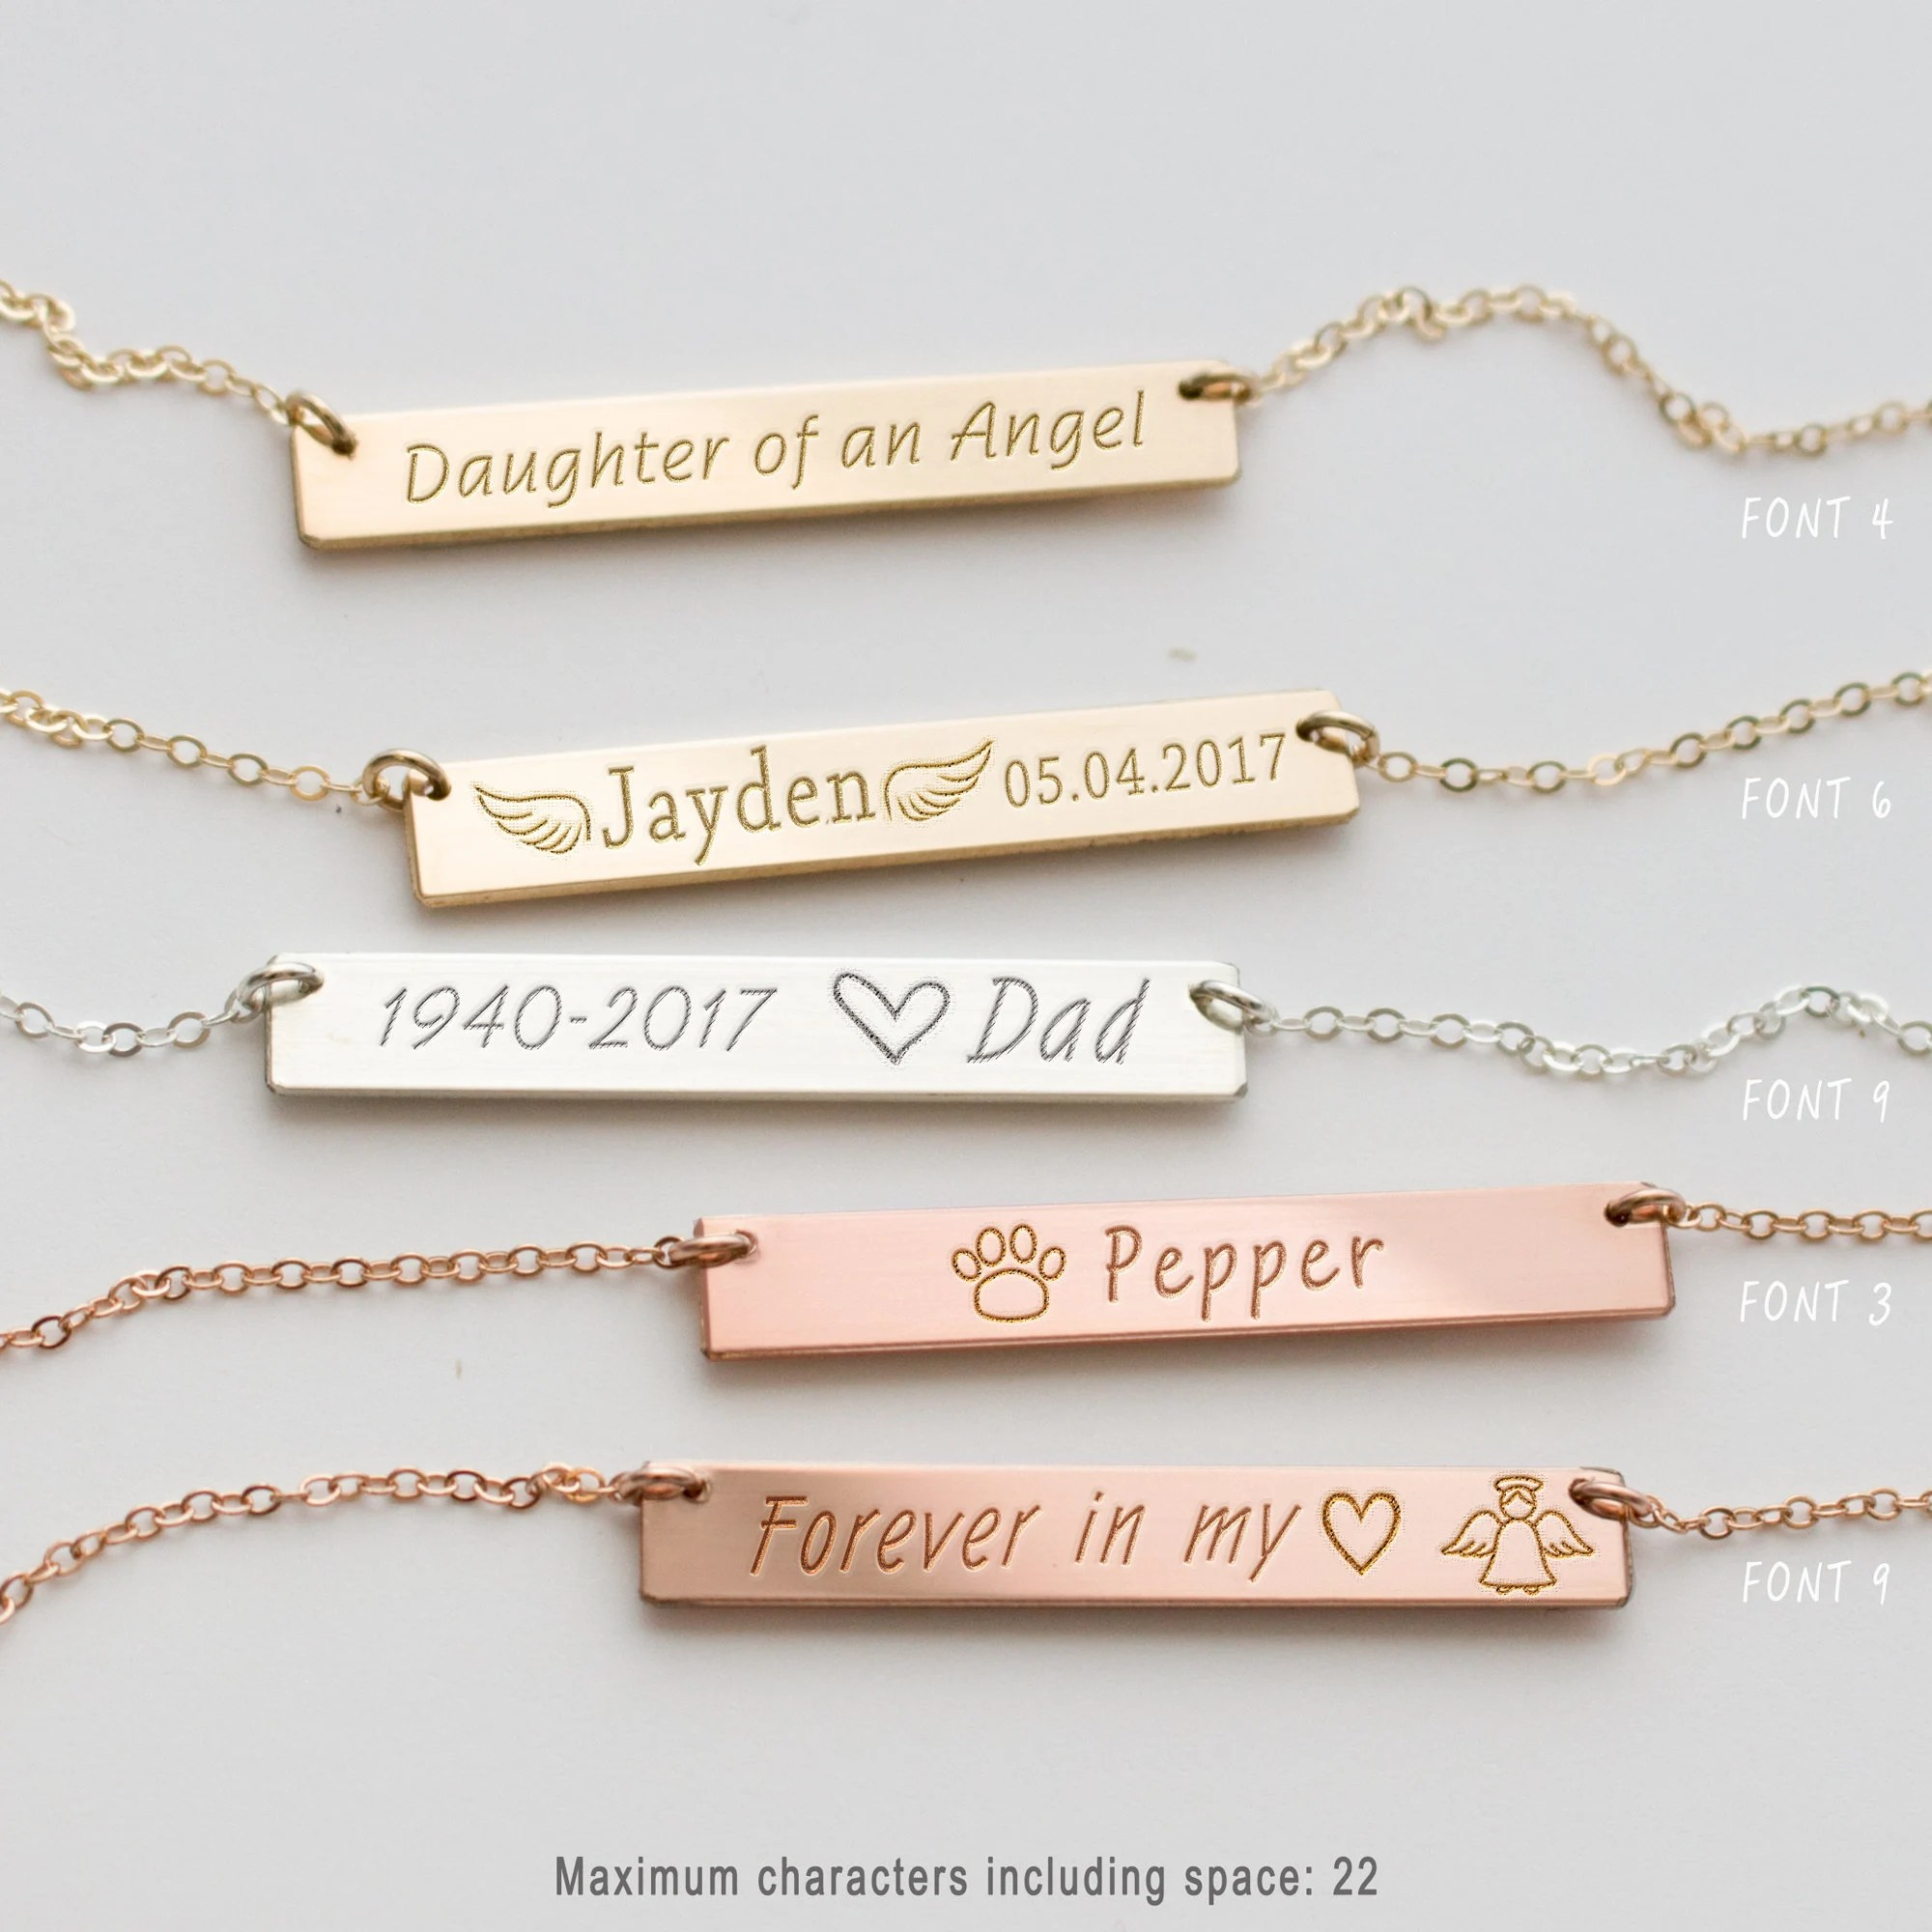 Personalized Memorial Necklace Remembrance Jewelry In Memory image 2